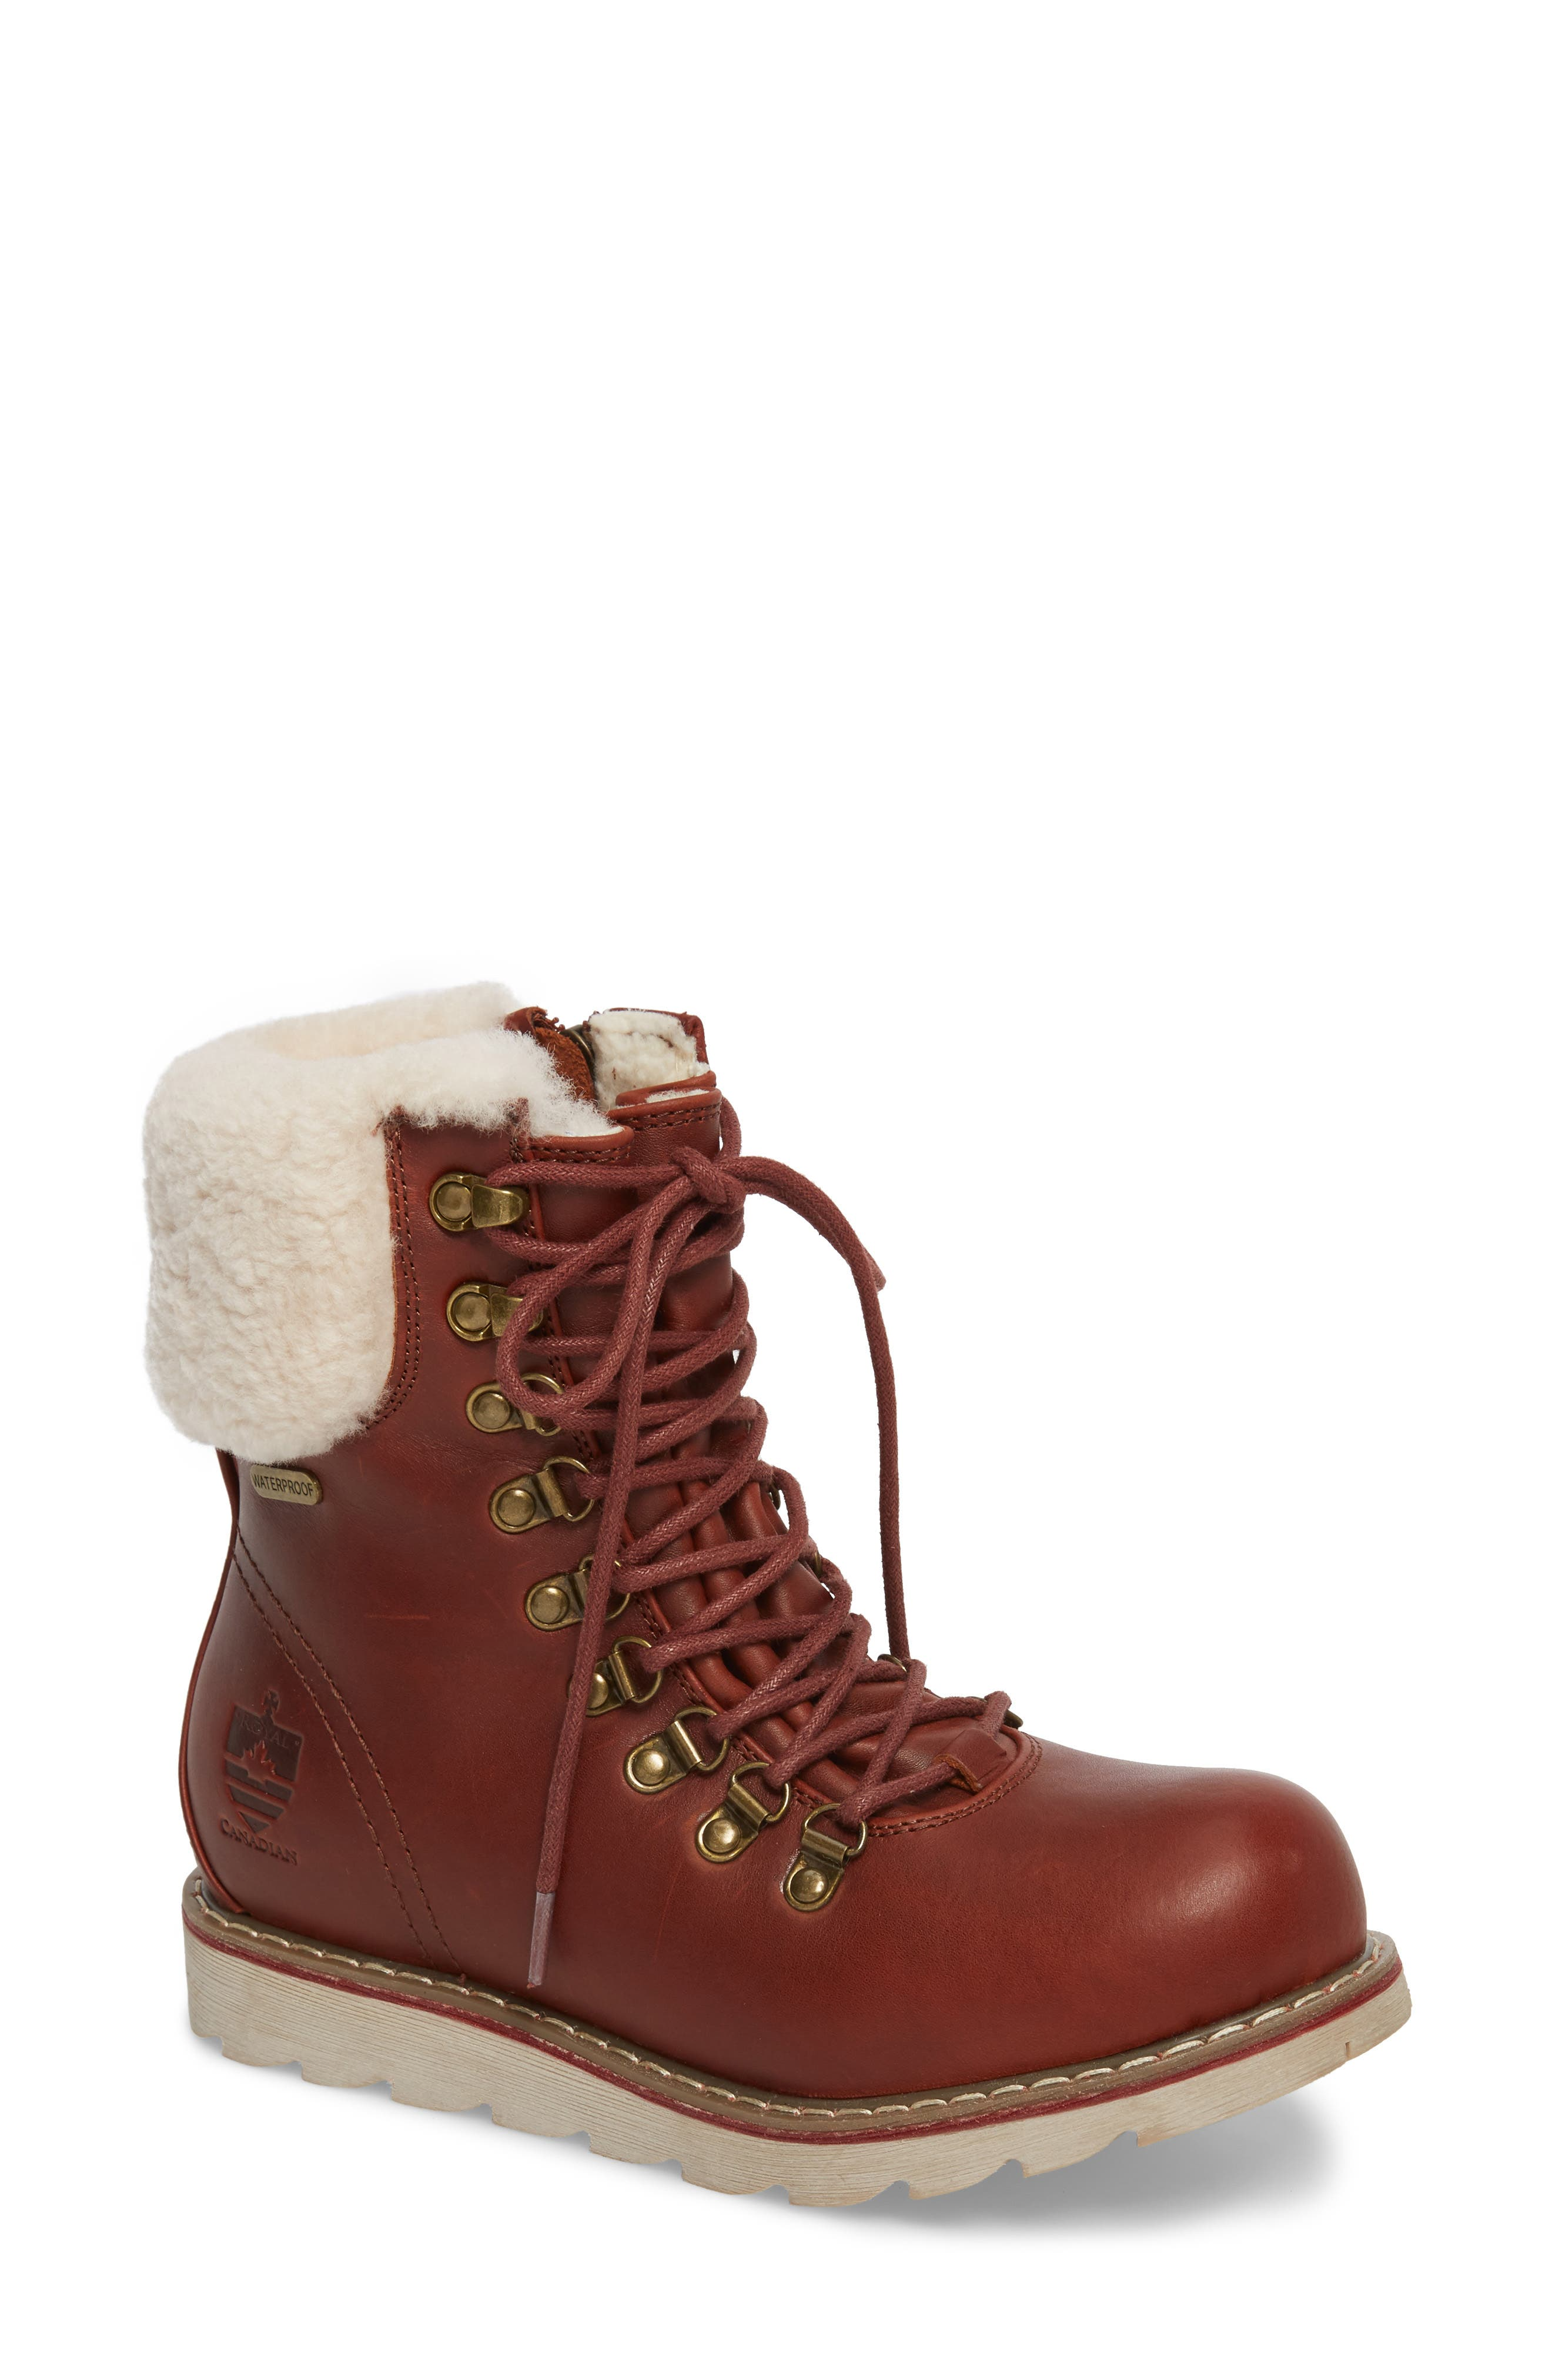 Royal Canadian Lethbridge Waterproof Snow Boot with Genuine Shearling Cuff  (Women)